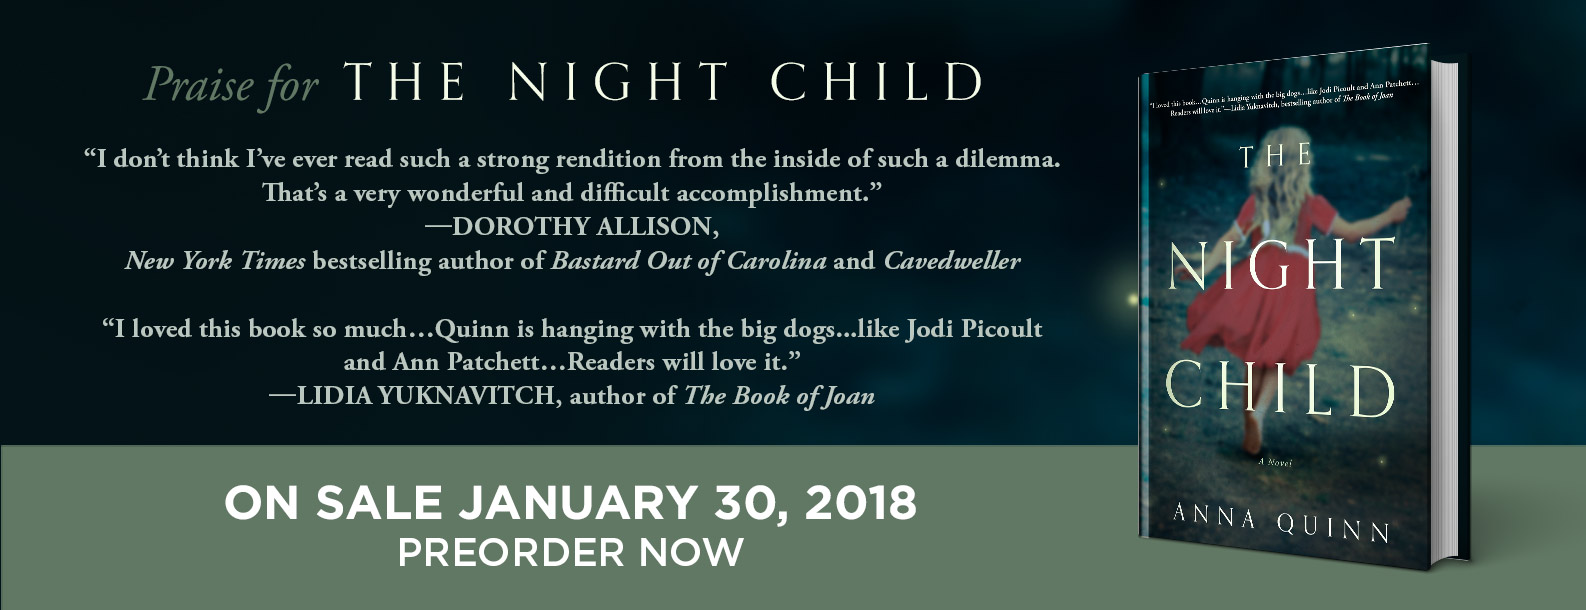 https://annamquinn.files.wordpress.com/2017/02/banner-the-night-child_bpbanner1.jpg